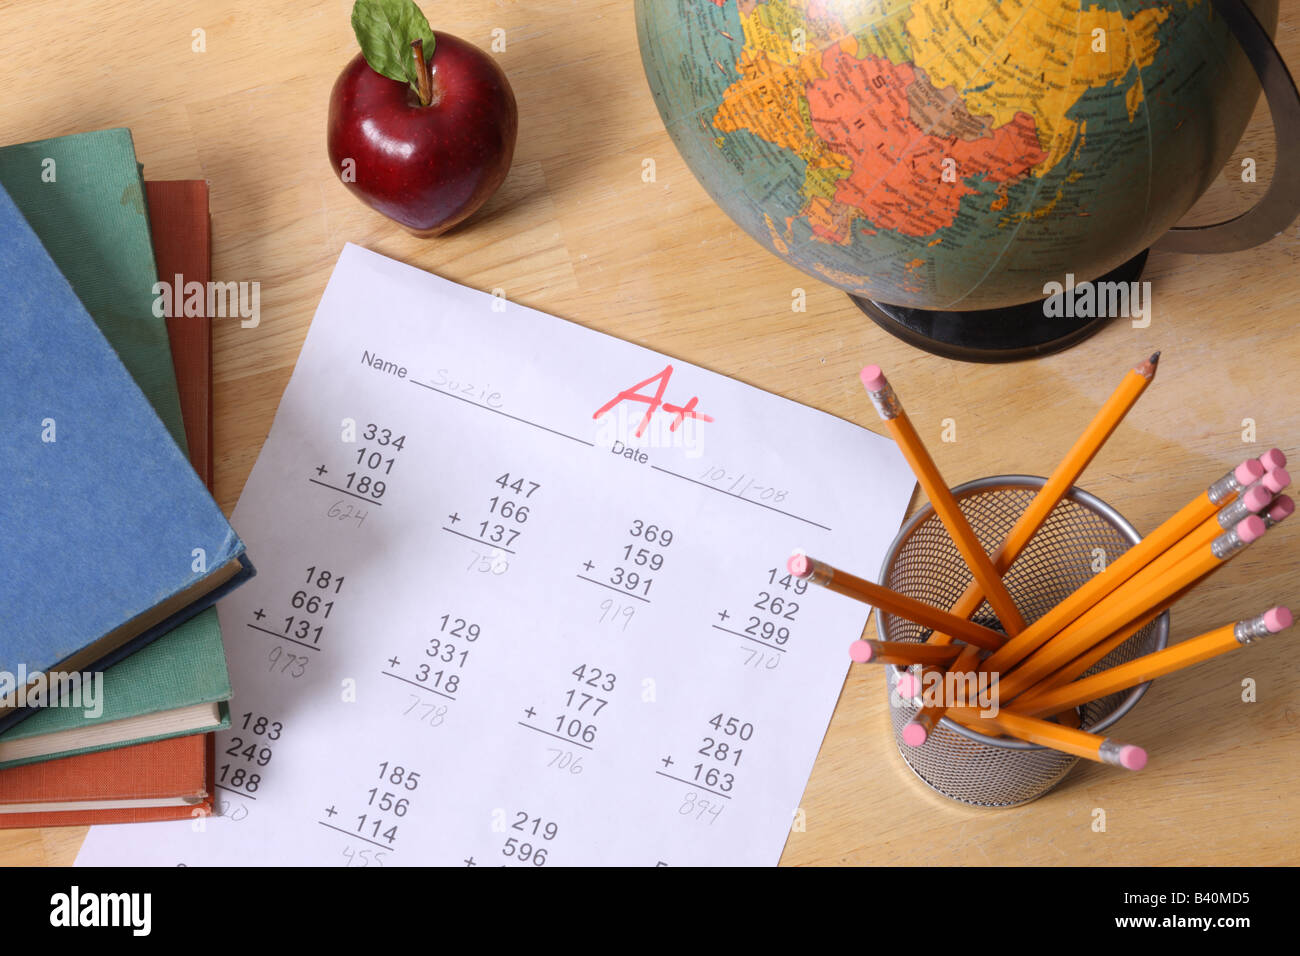 school education still life with books globe apple pencils and a